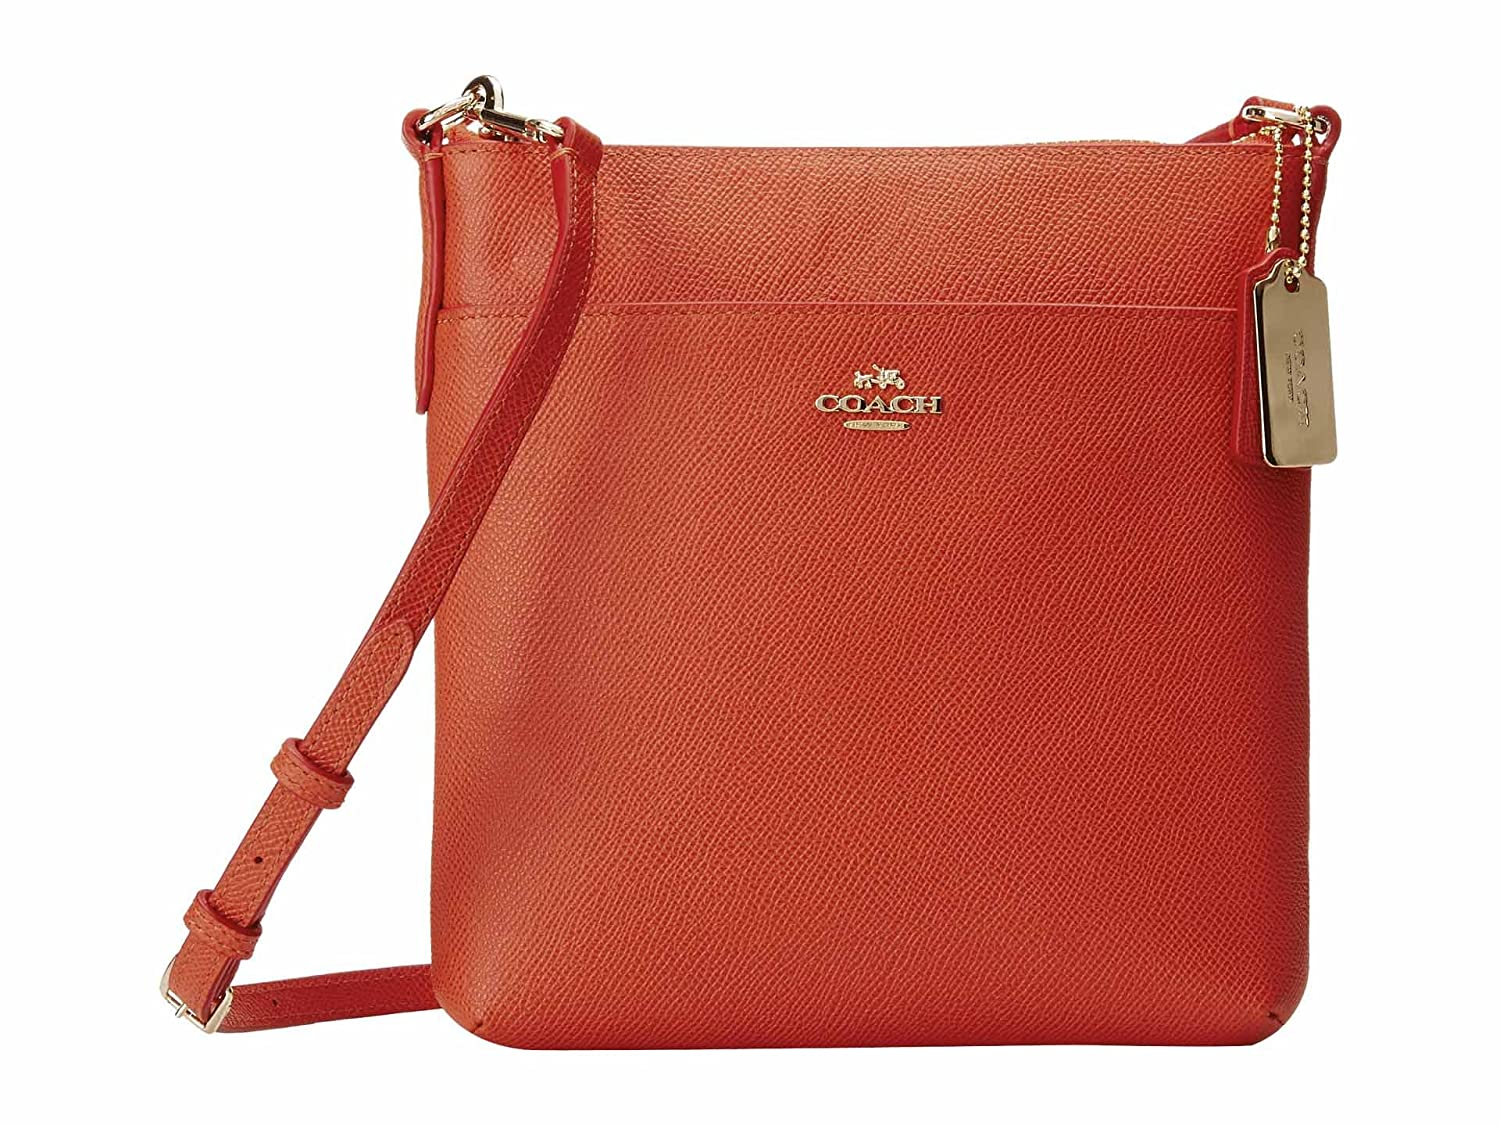 Coach 52348 Embossed Textured Leather North/south Swingpack, Coral